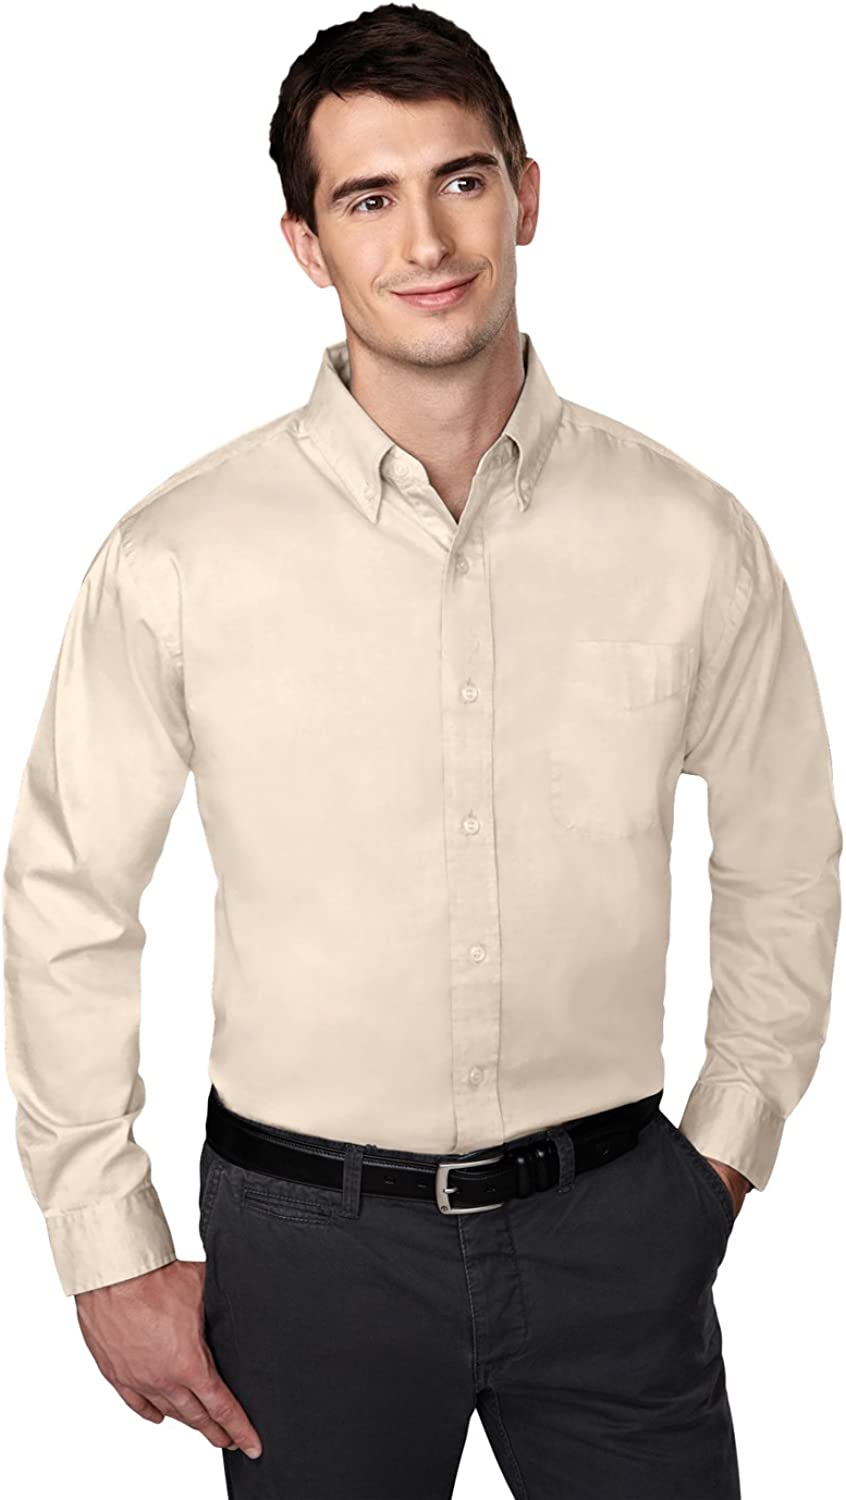 Tri-mountain Mens cotton/poly wrinkle free pinpoint oxford shirt. 780 - SAND_LT